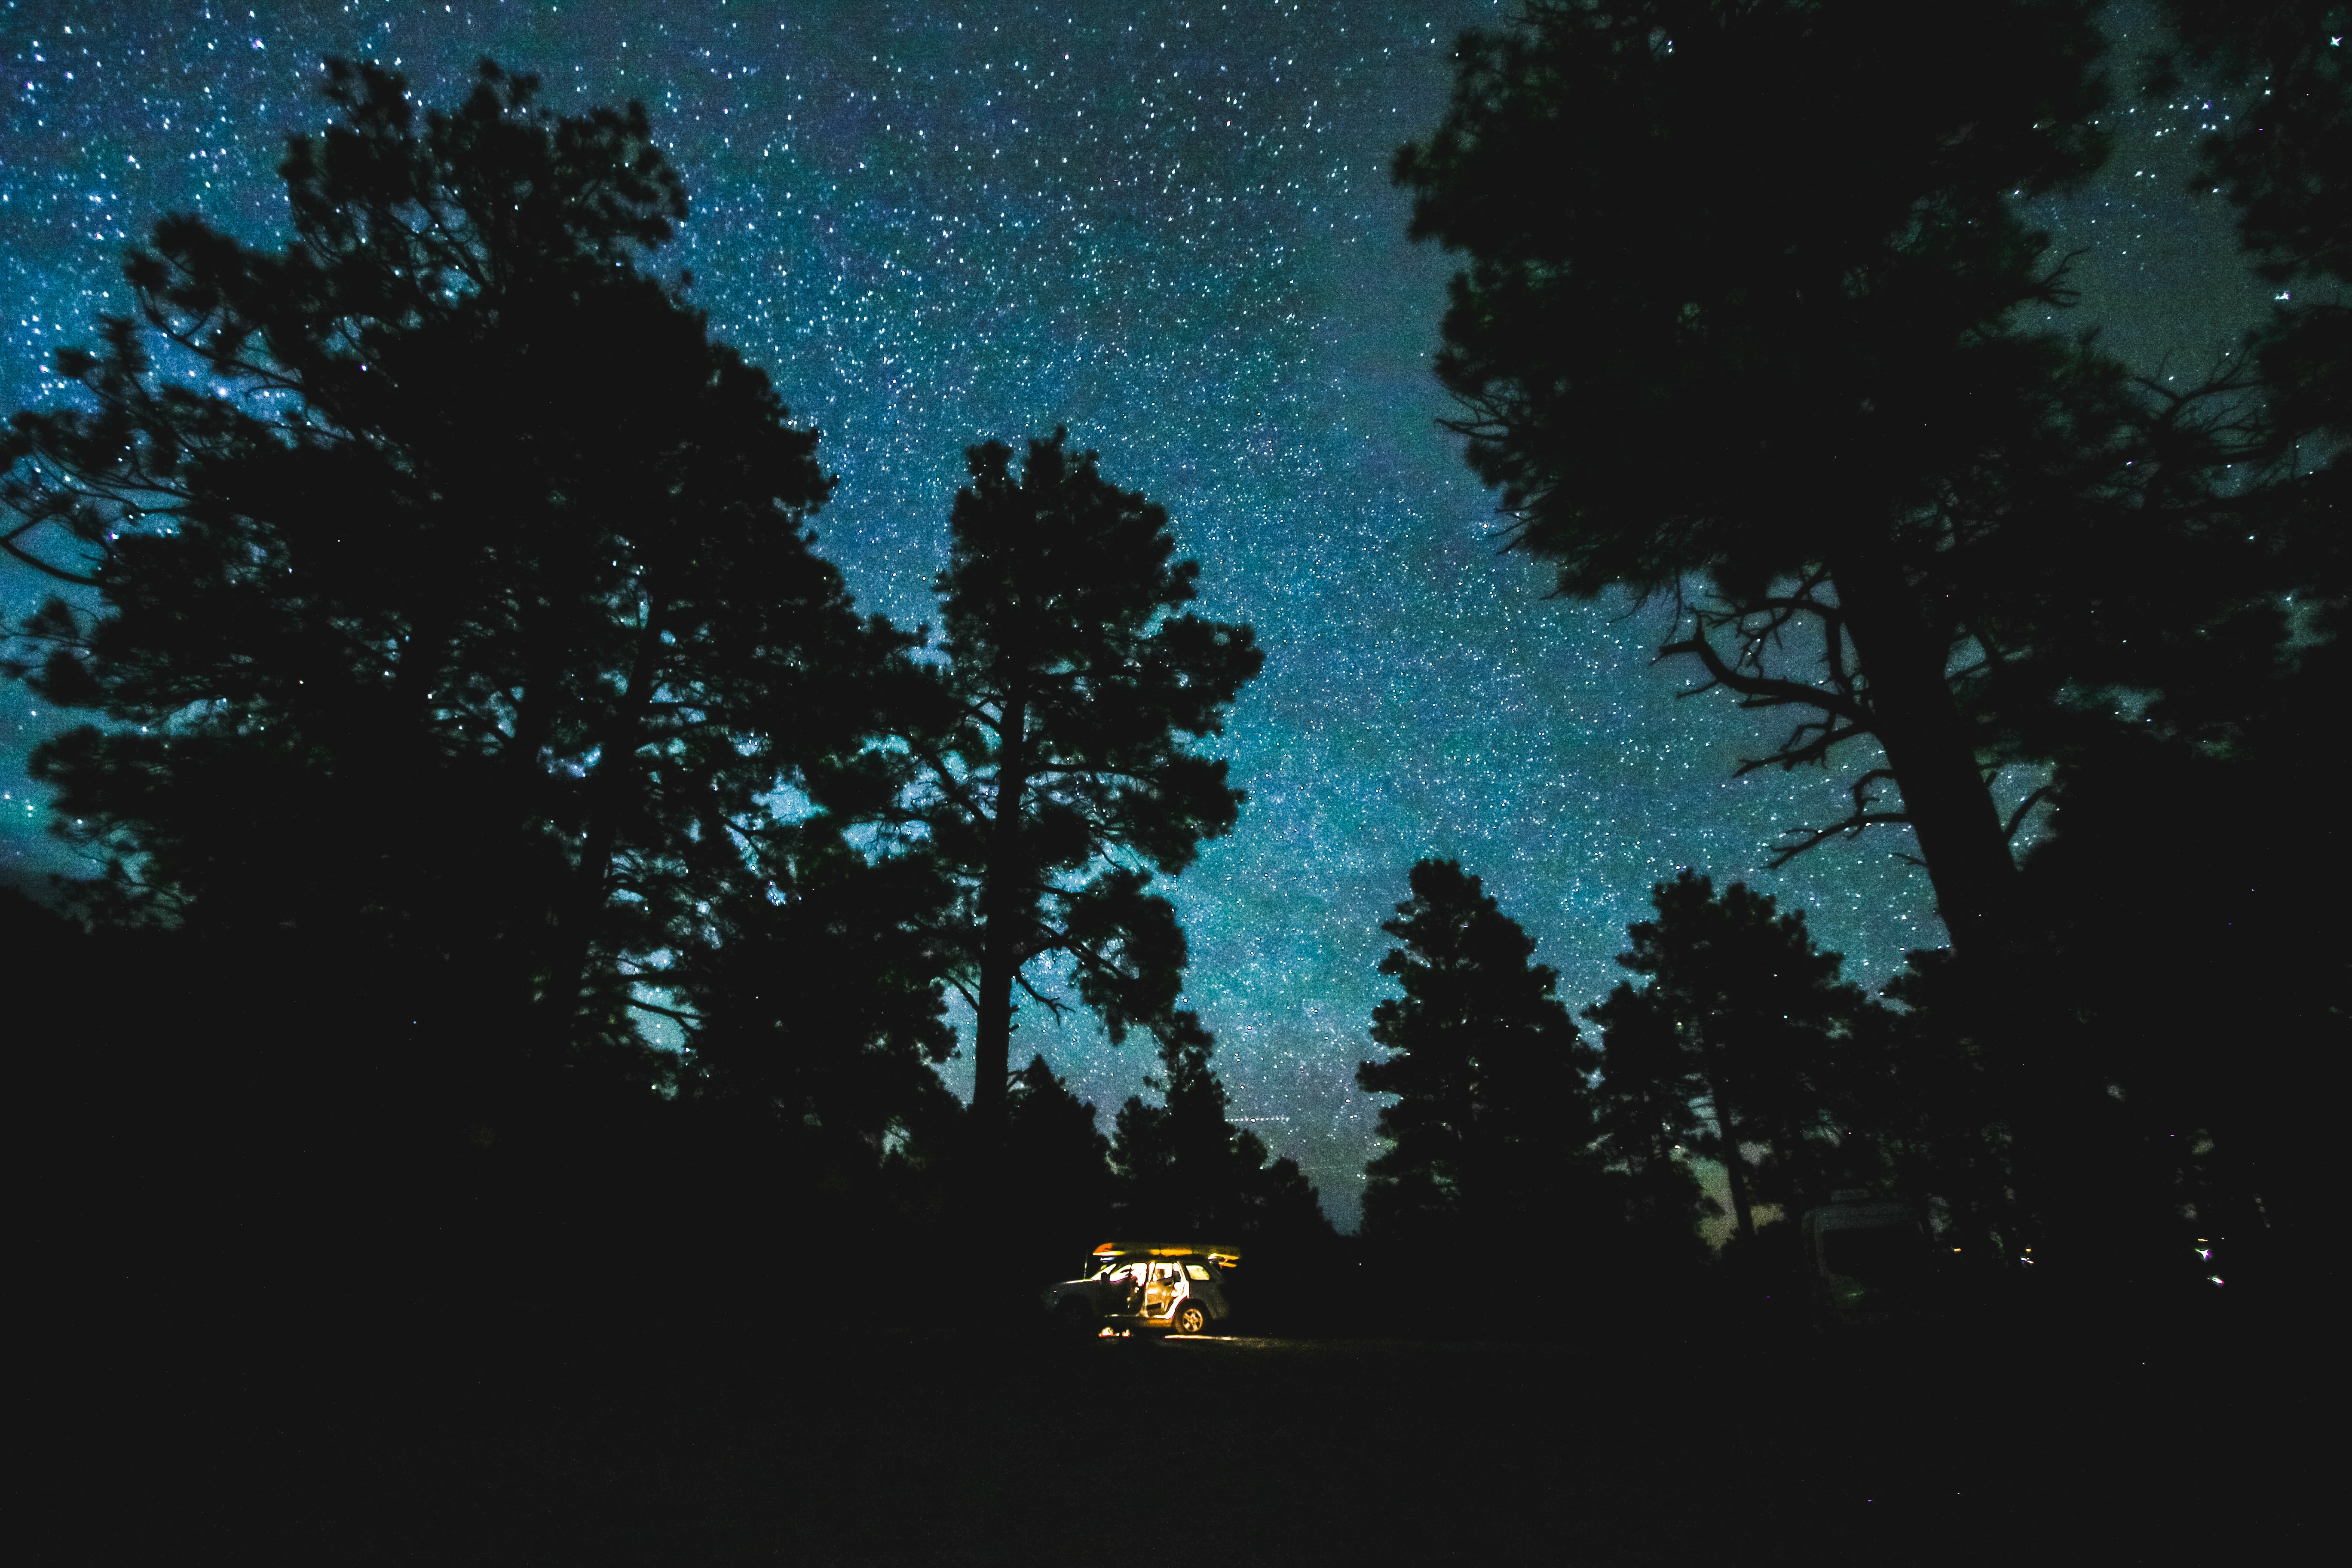 low angle photo of forest under clear sky during nighttime